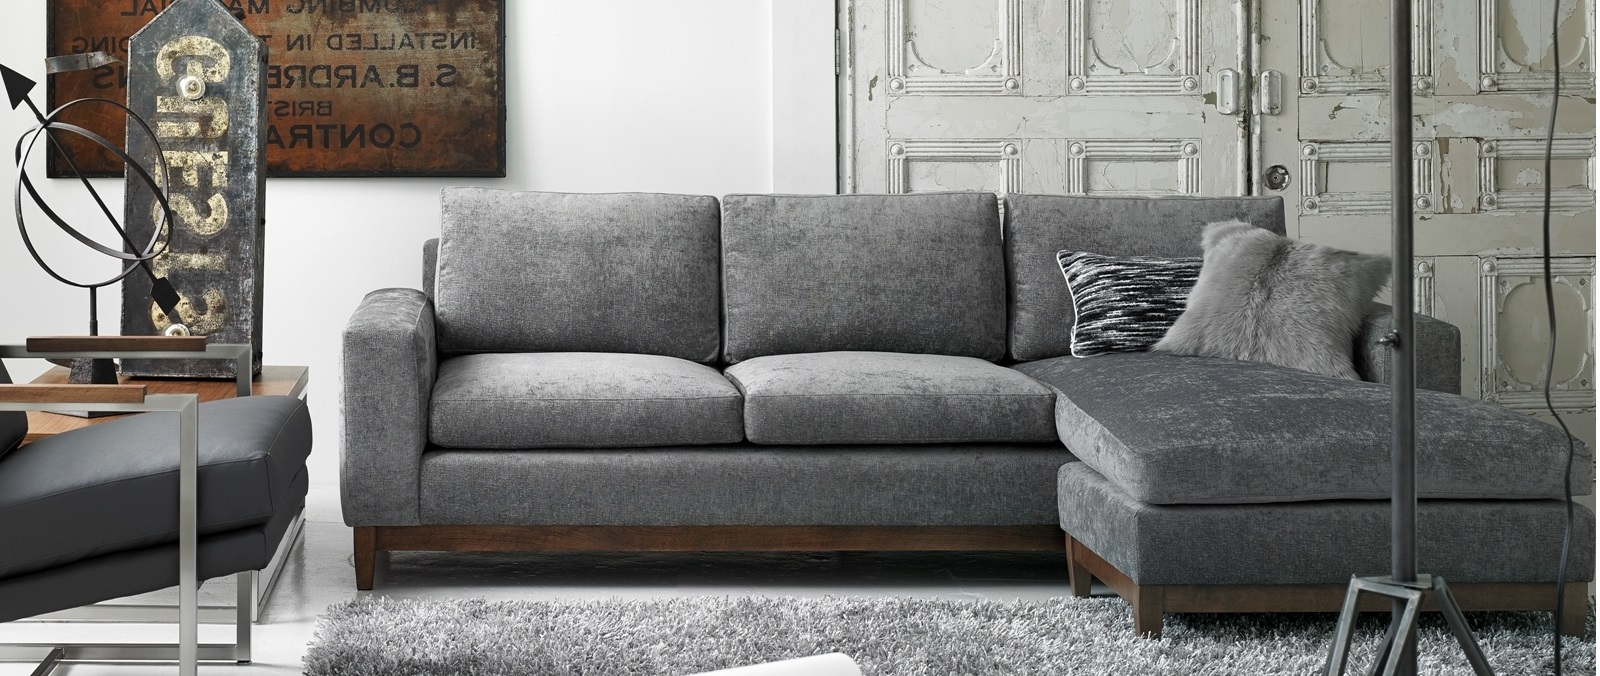 Mikazahome Throughout Most Up To Date Ontario Canada Sectional Sofas (View 9 of 20)